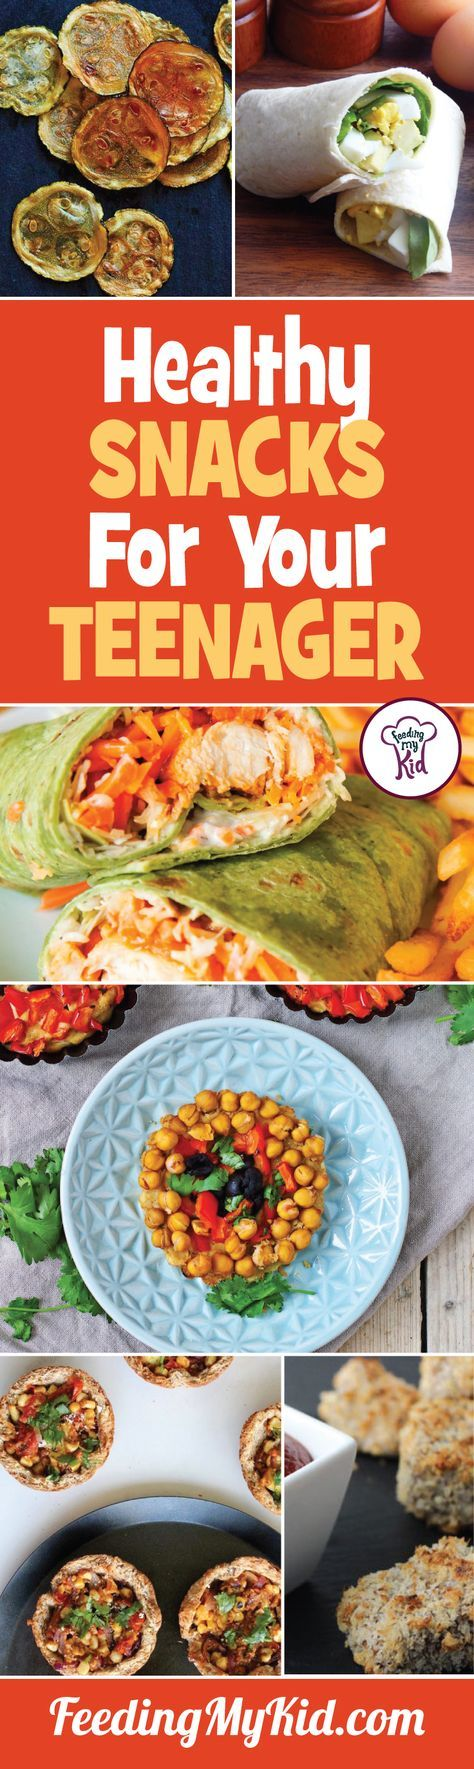 This is a must pin! We put together this list of healthy snacks for teens that your kids will love to eat. These recipes are sure to please your teens!  Feeding My Kid is filled with all the information you need about how to raise your kids, from healthy tips to nutritious recipes. #FeedingMyKid #healthysnacks #snacks #healthykids